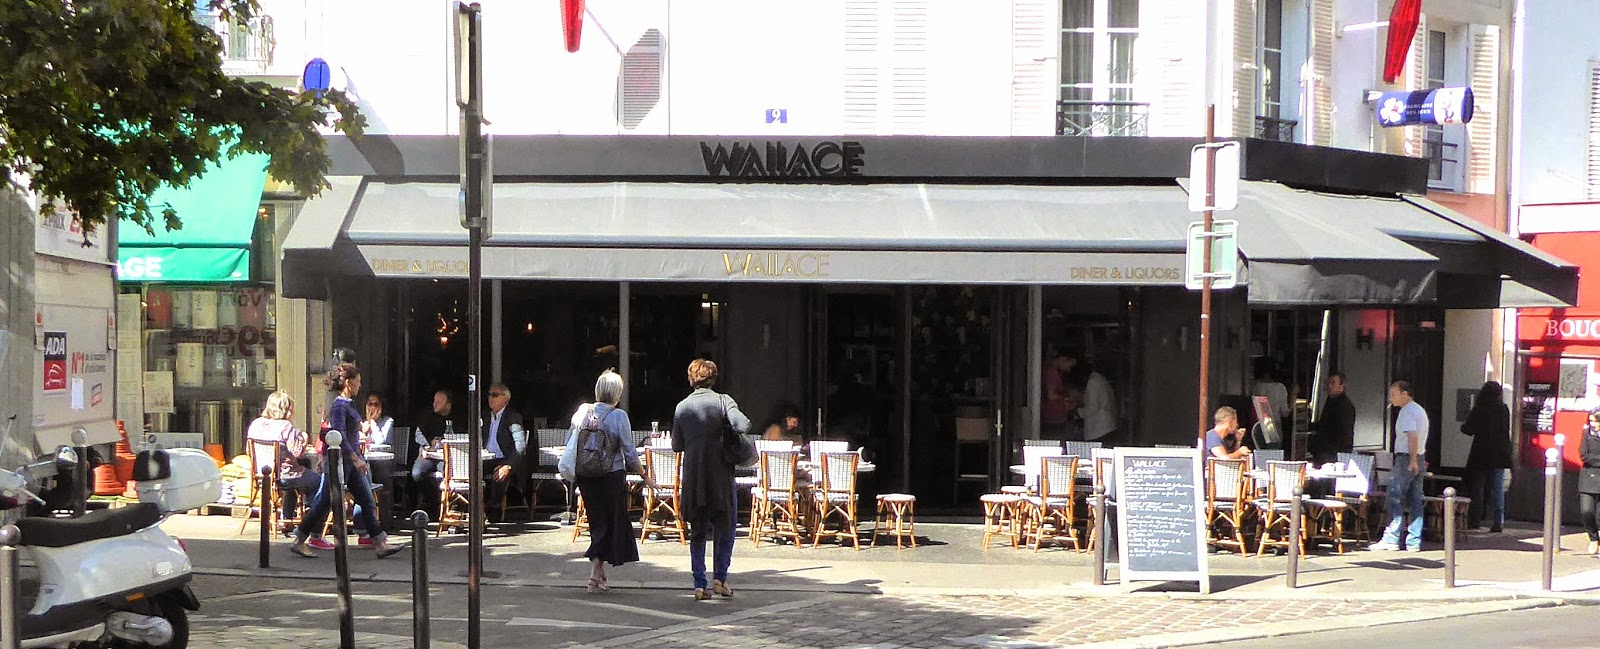 Paris Missives...: Wallace -- Restaurant Review